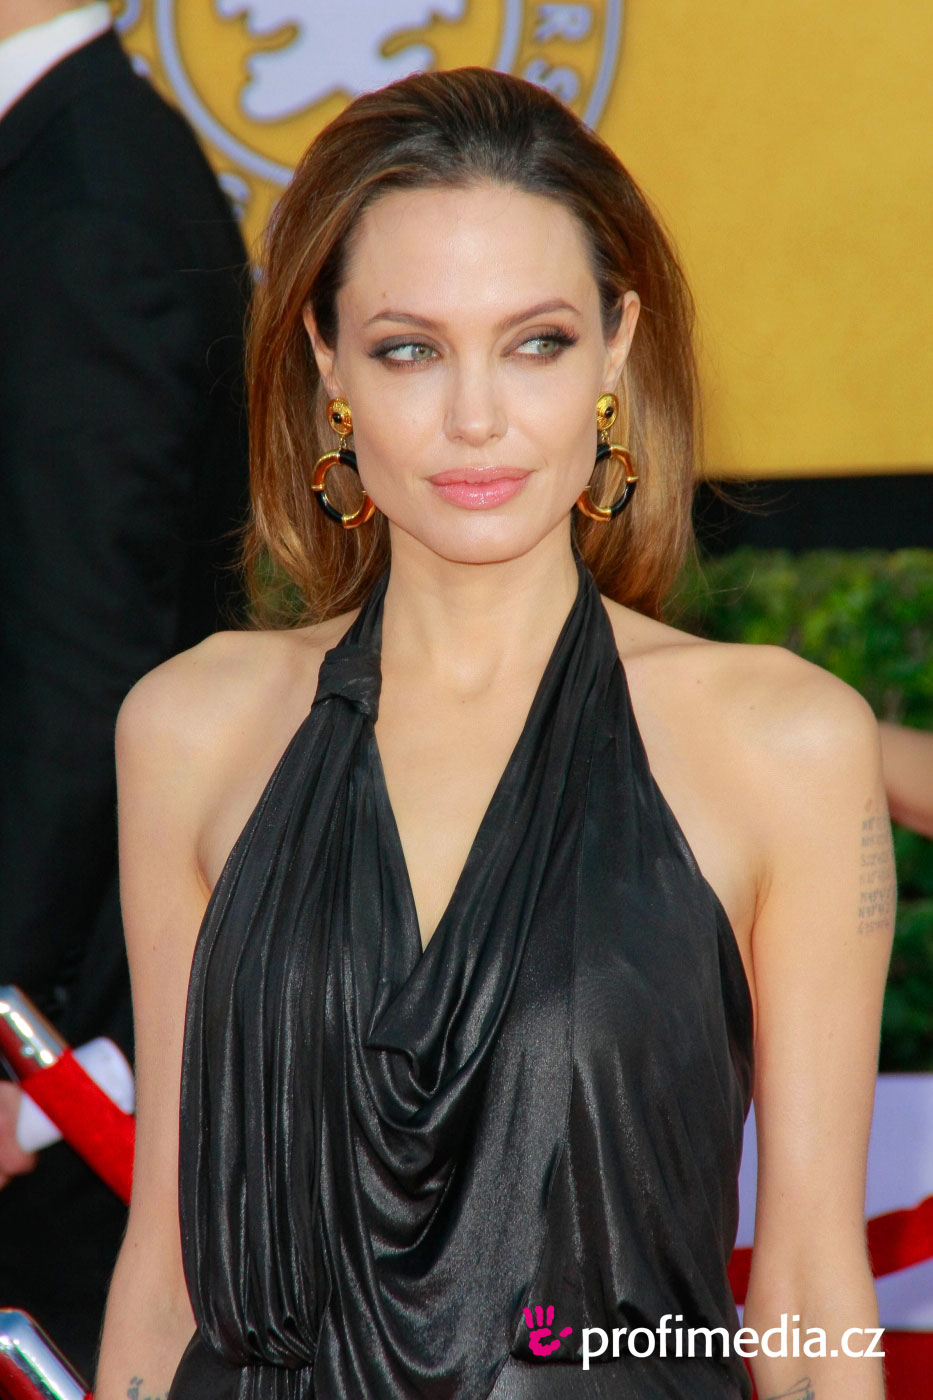 Angelina Jolie Coiffure Happyhair